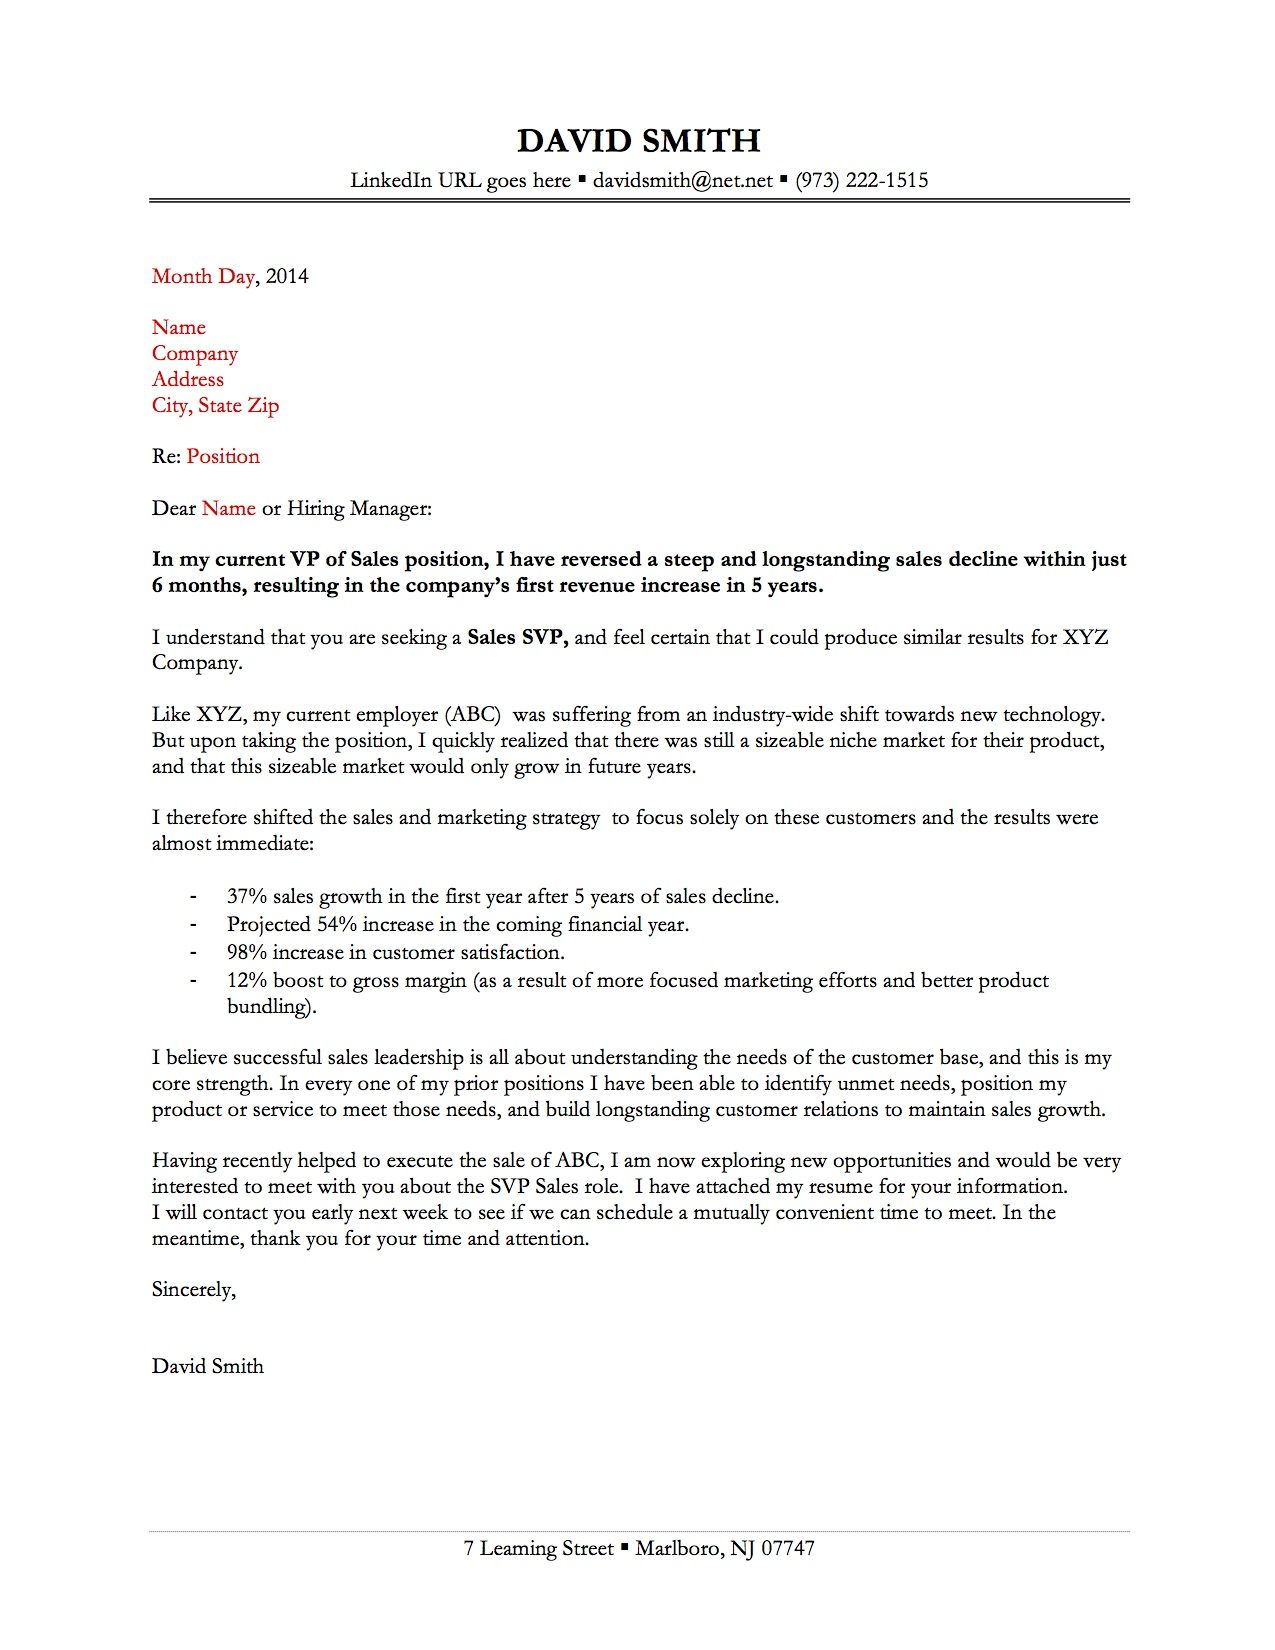 Marvelous Two Great Cover Letter Examples Blue Sky Resumes Blog Tips For Writing With  Samples  Example Of A Great Cover Letter